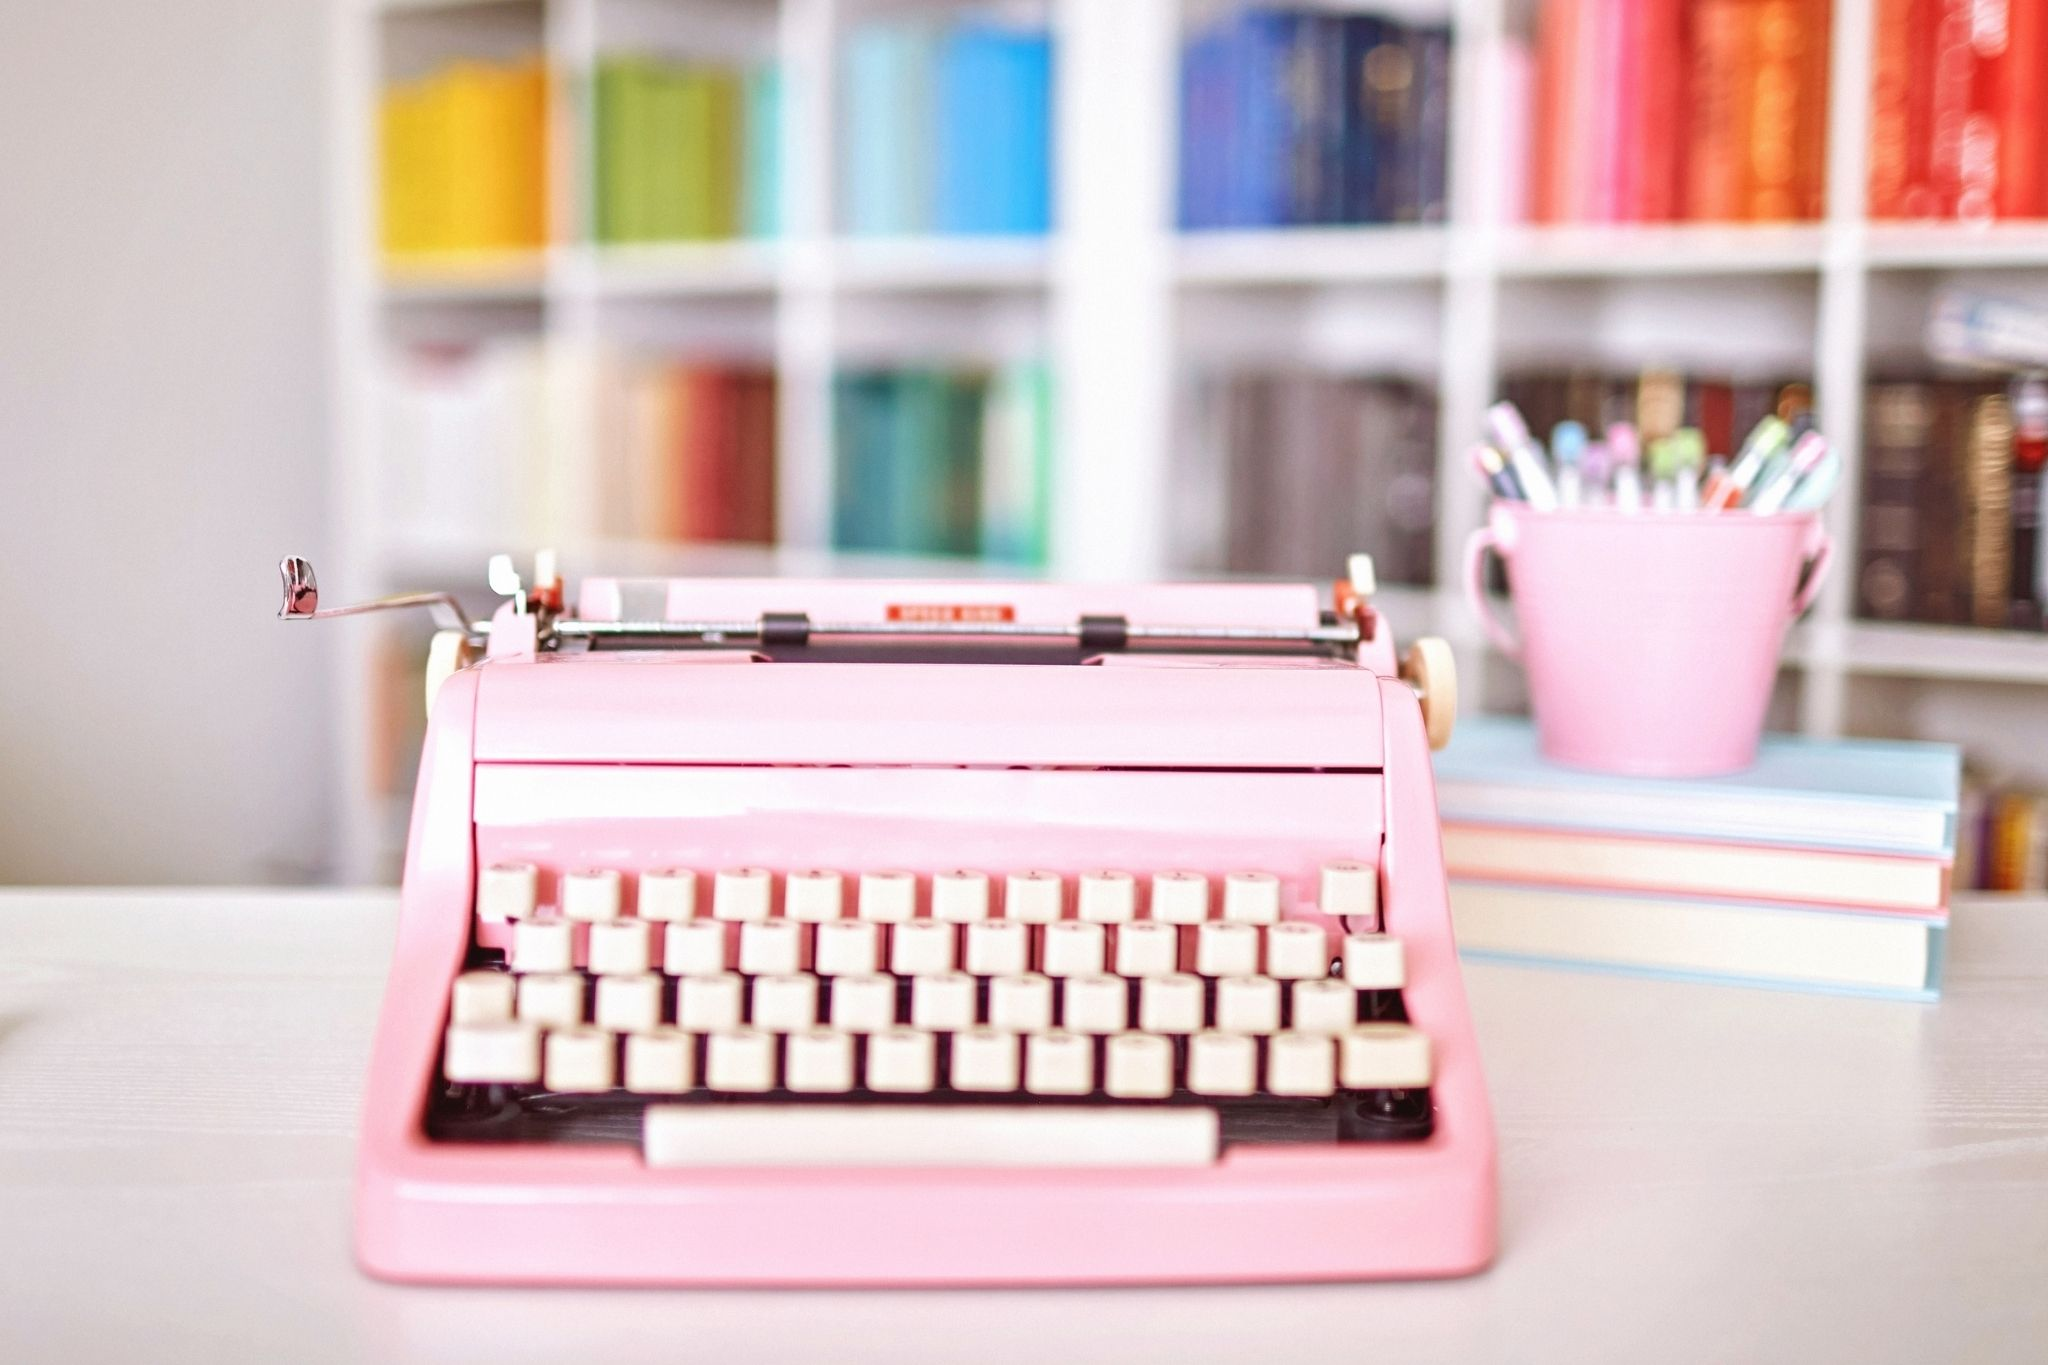 pink typewriter on desk in front of rainbow coloured shelving